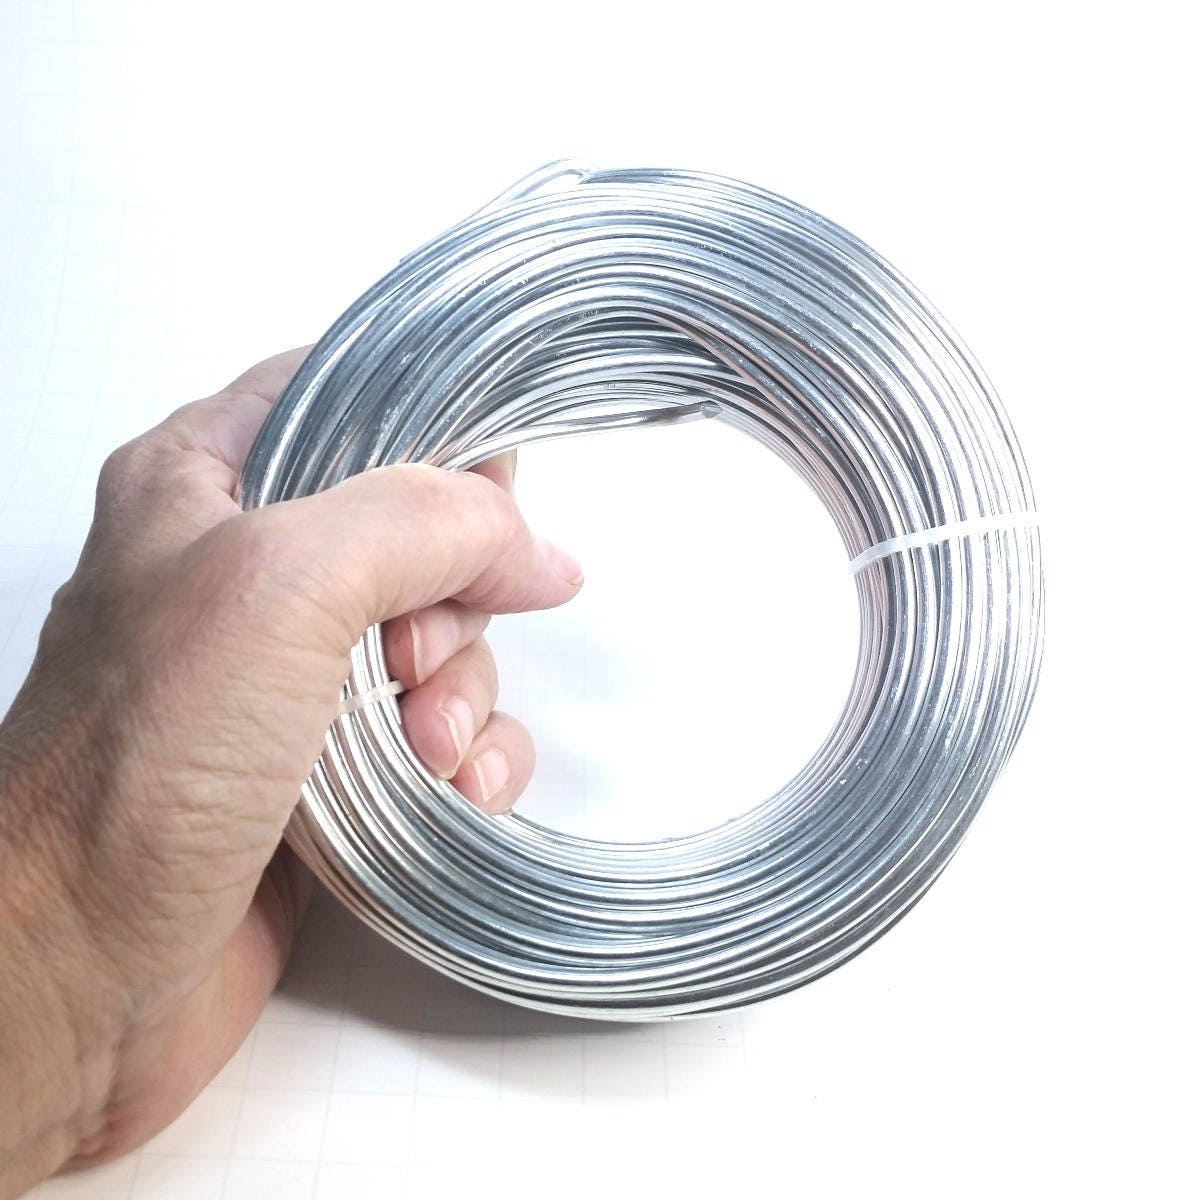 Bulk Aluminum Wire, Round Silver Color, 500 Grams, Choose Sizes from ...